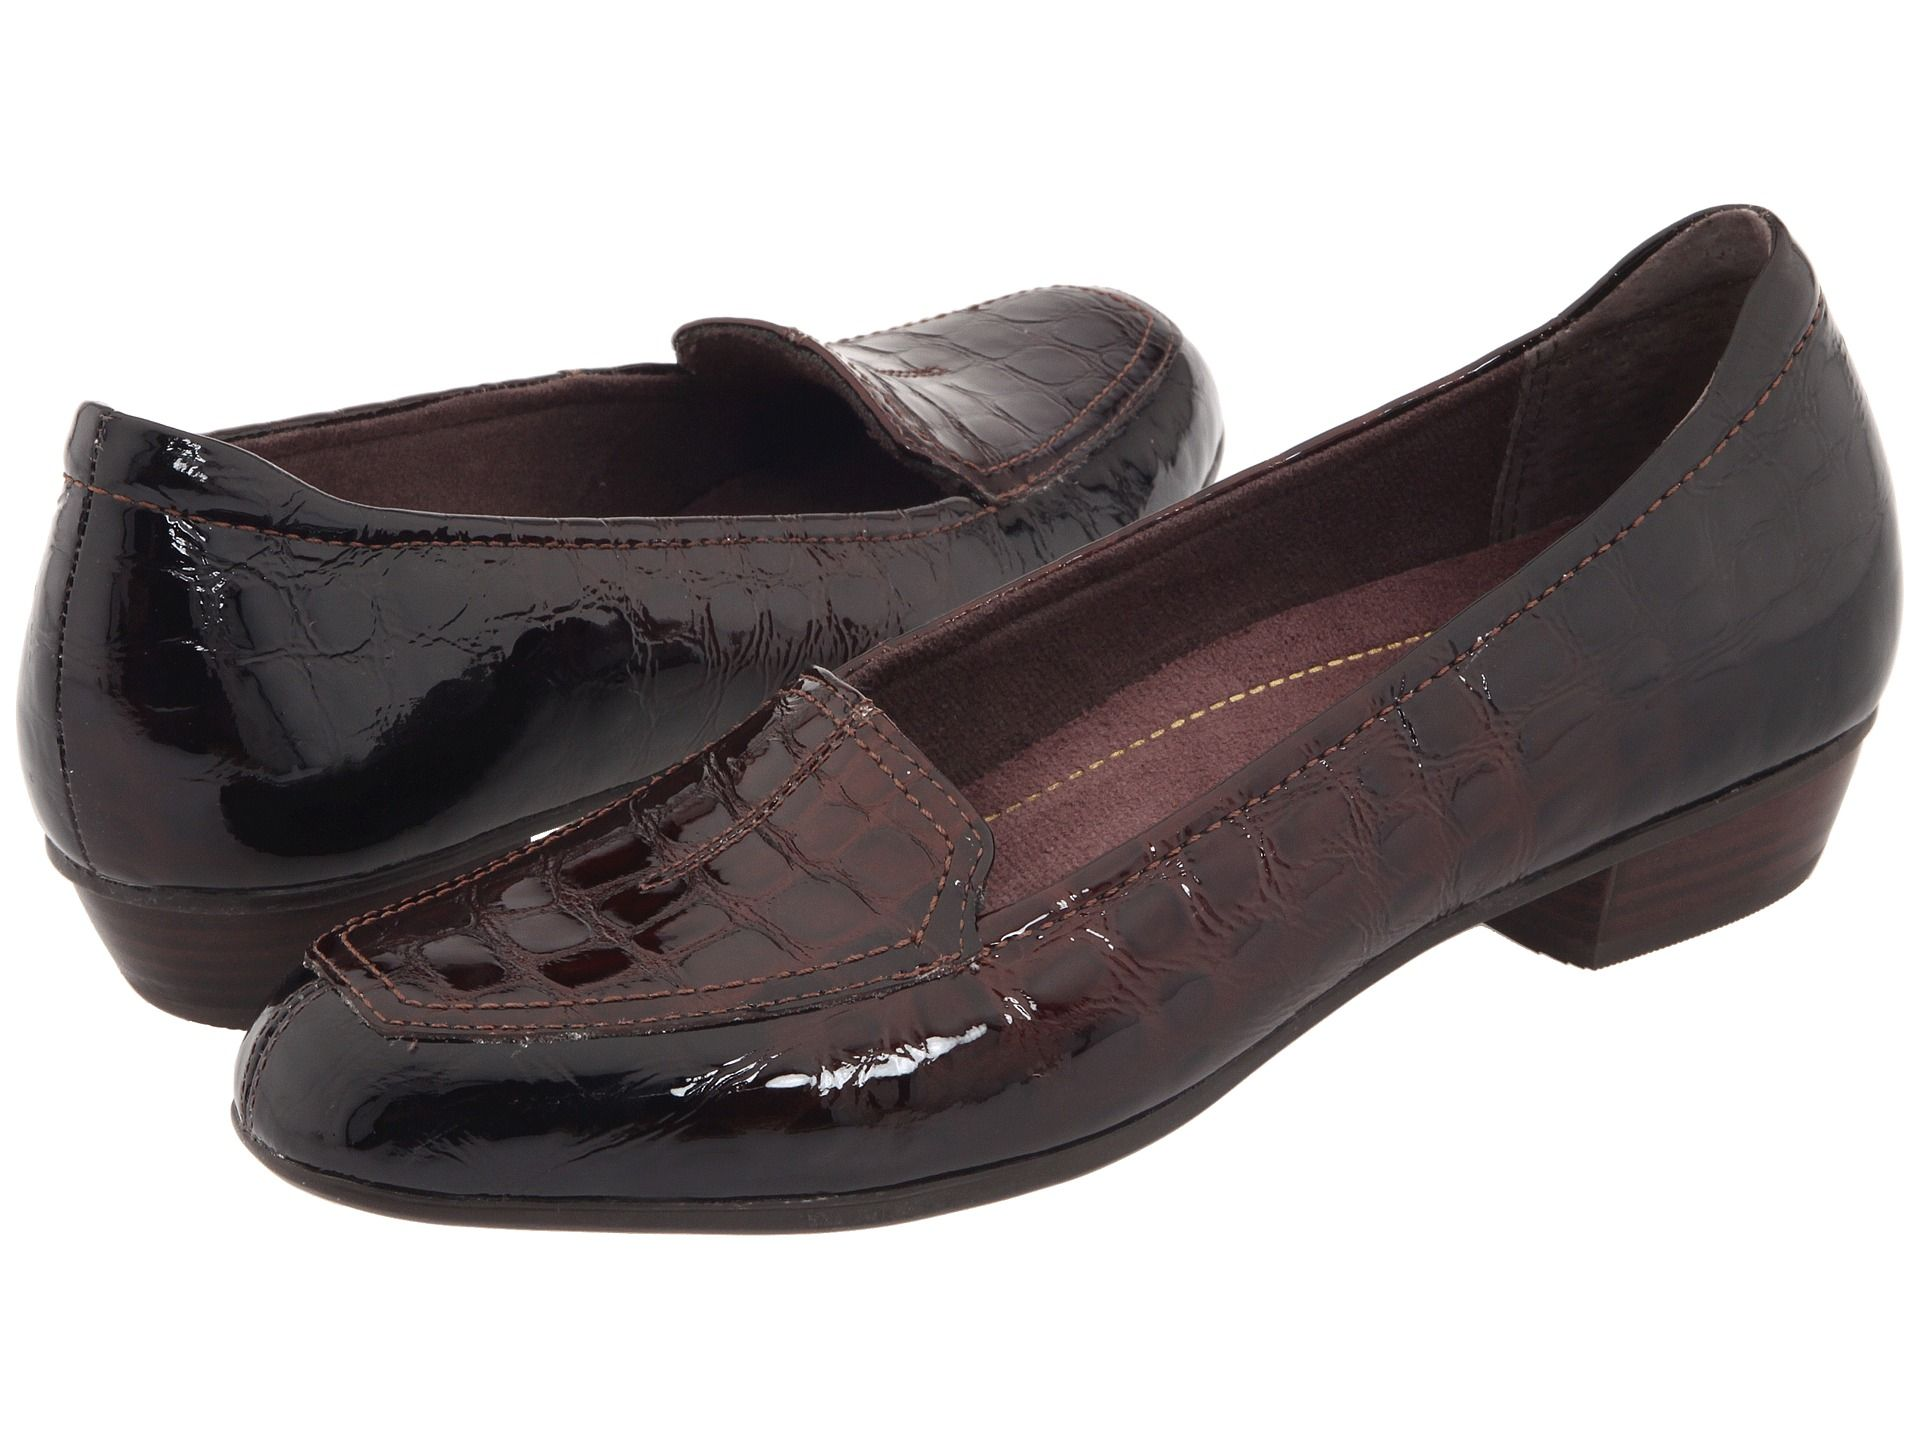 Loafers in brown patent leather croco